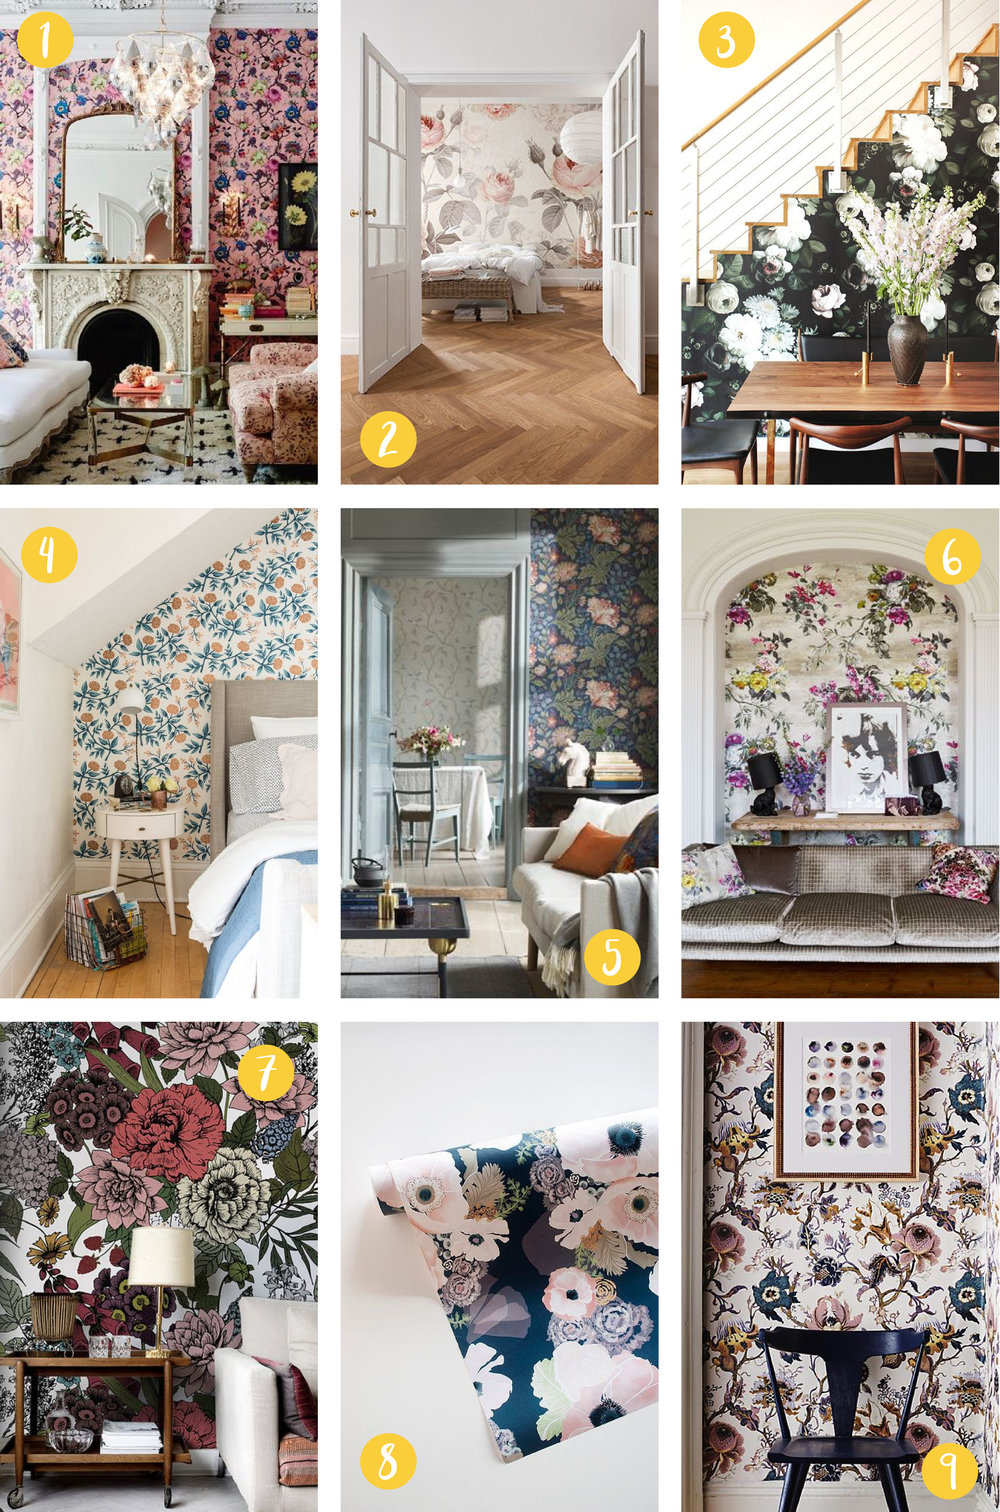 Lately Loving: Floral Wallpaper, Nyla Free Designs Inc.